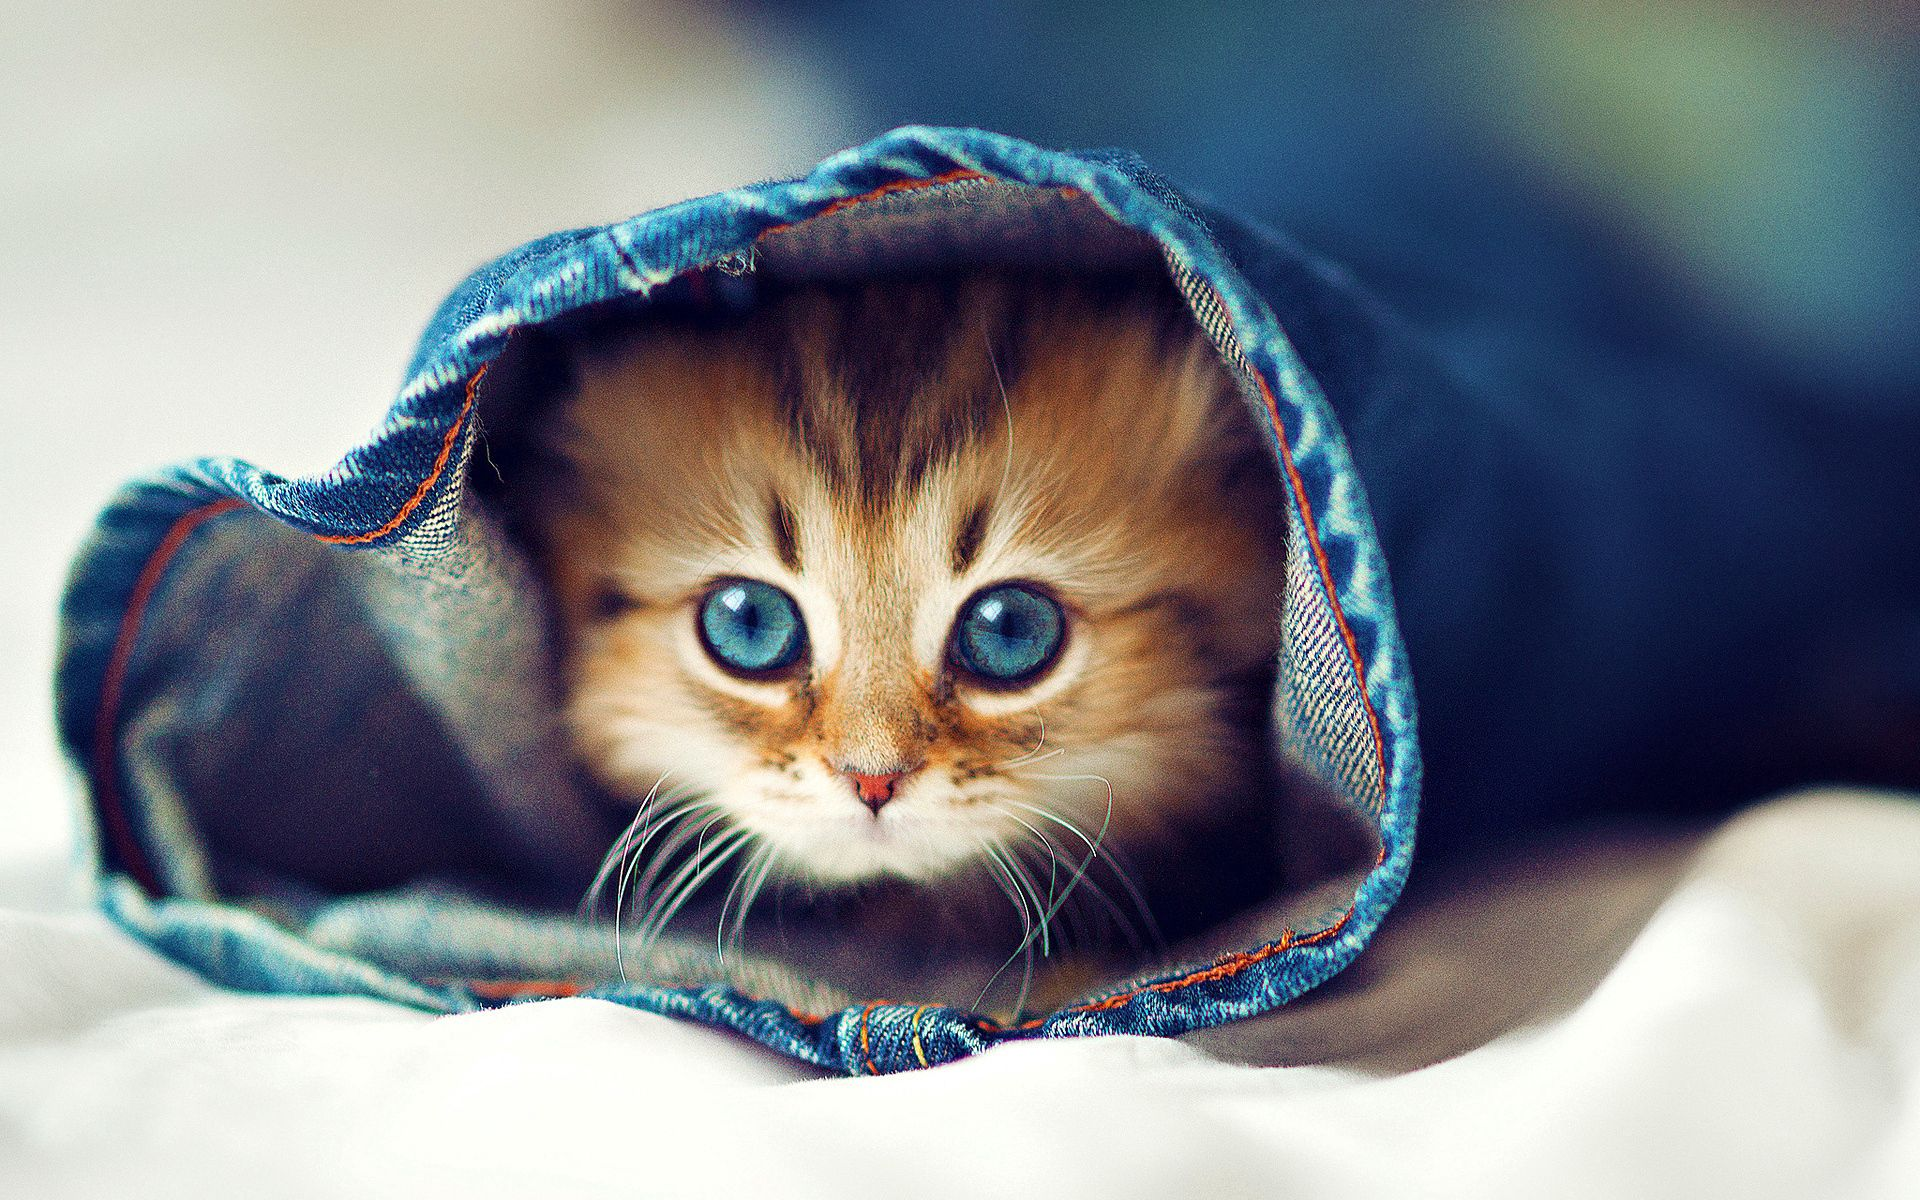 125667 download wallpaper Animals, Fluffy, Kitty, Kitten, Muzzle, Hide, Jeans screensavers and pictures for free